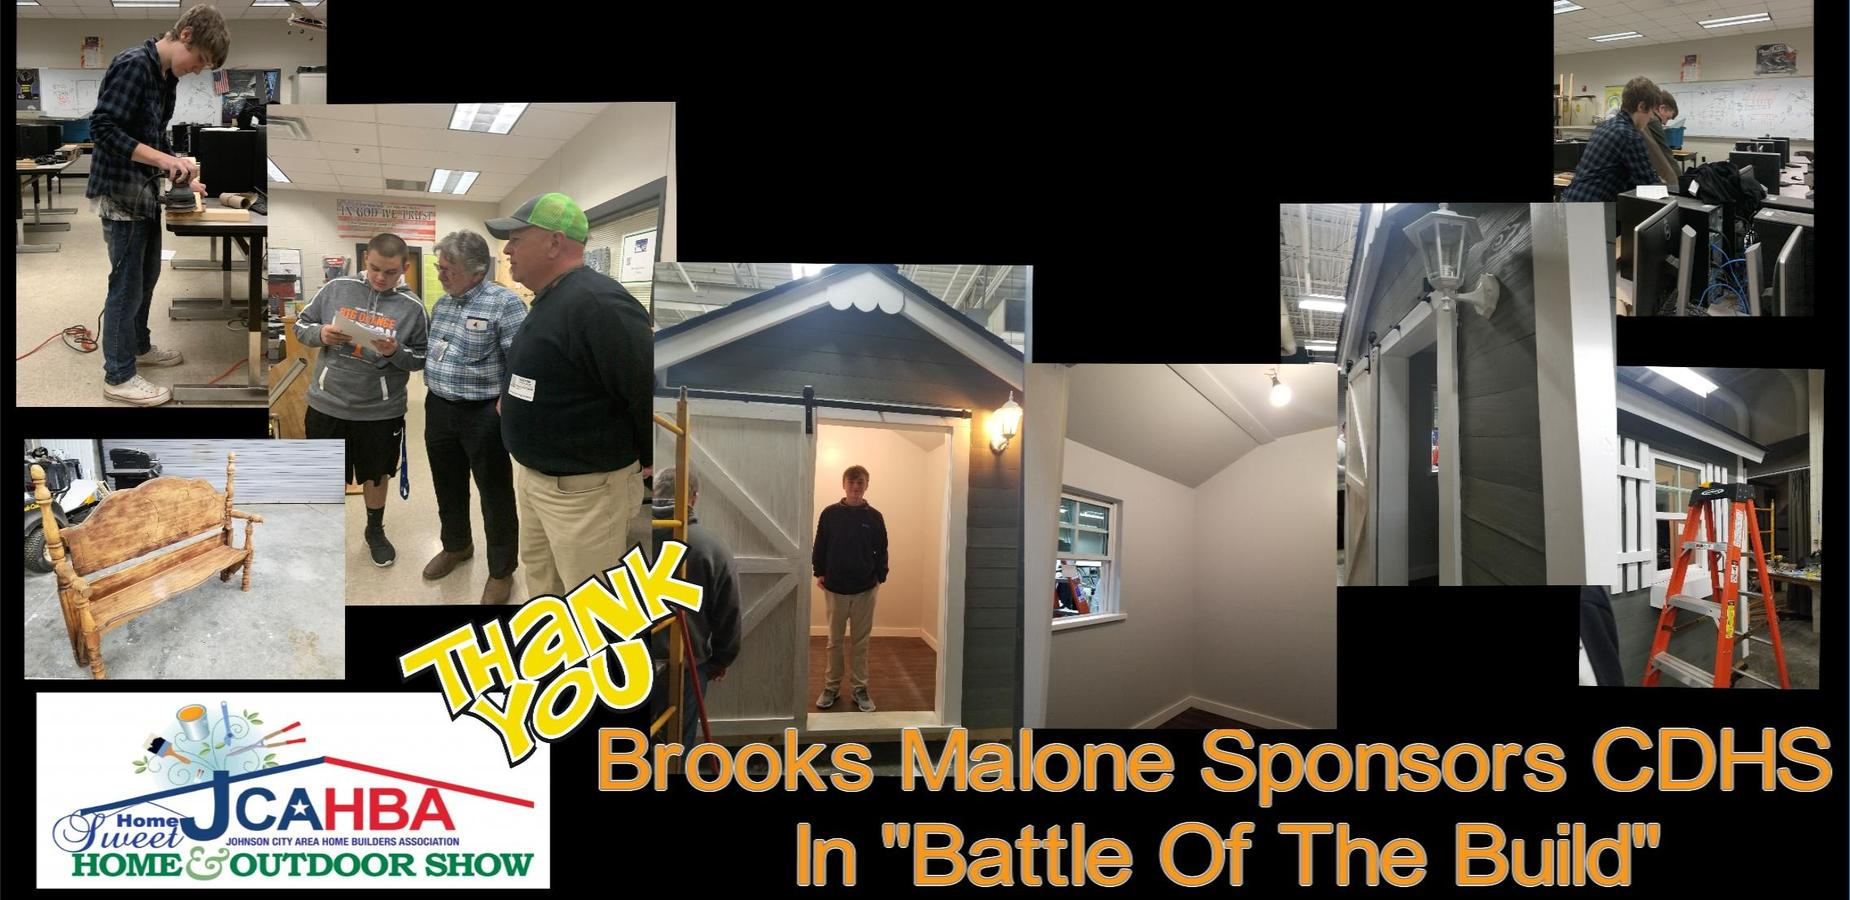 Thank you Brooks Malone